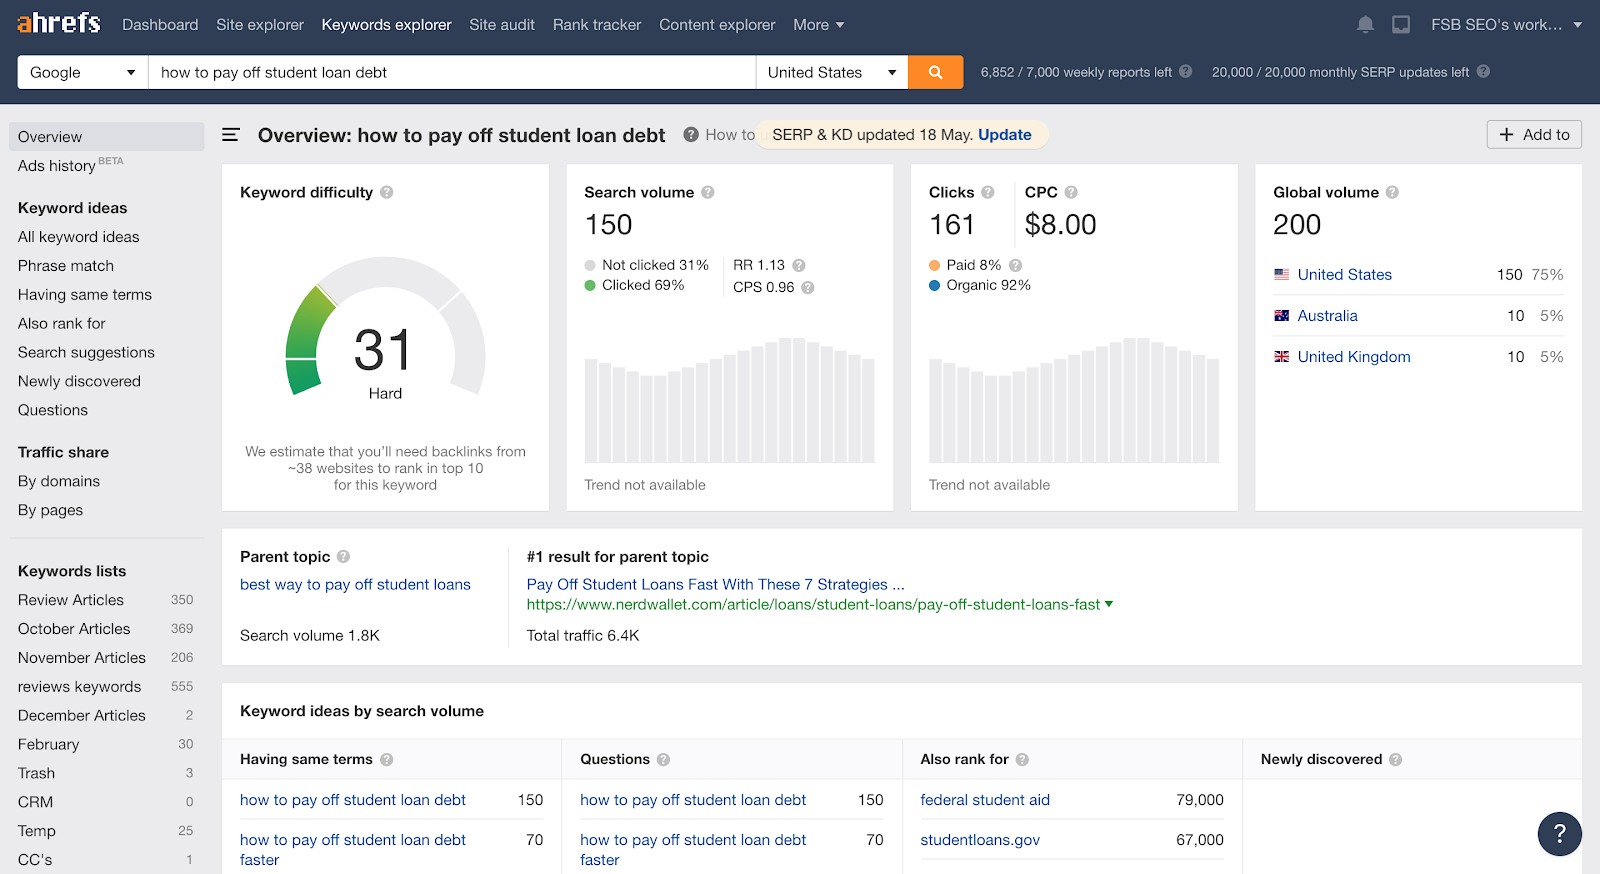 Ahrefs.com interface how to pay off student loan debt